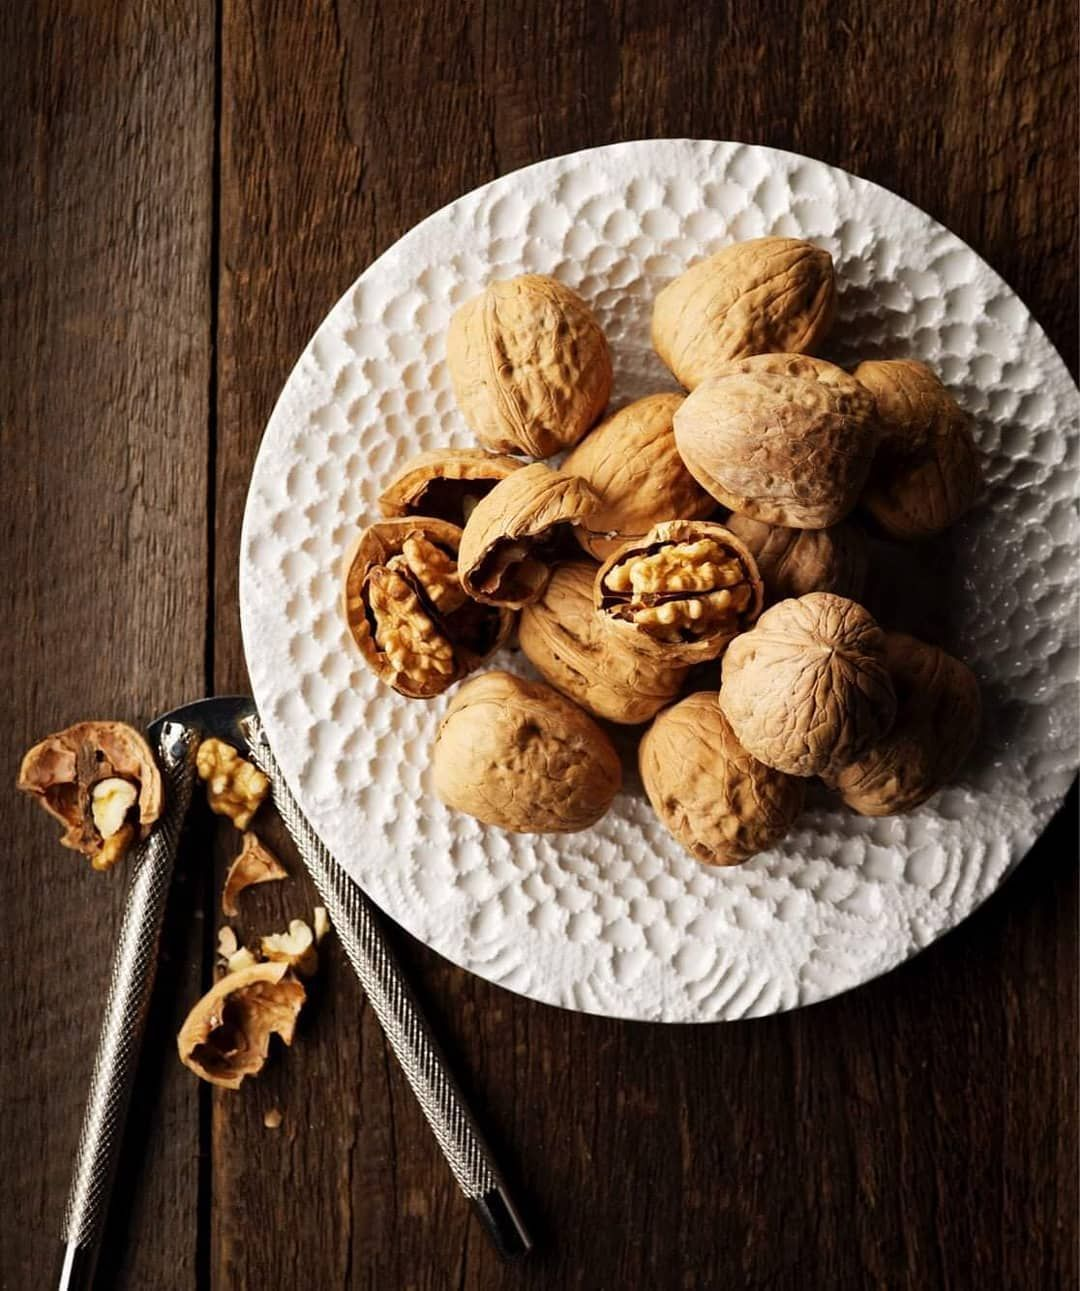 Eating healthy can be as easy as adding a handful of walnuts to your diet every day. Did you have your daily dose today? #CaliforniaWalnuts #WalnutsForWellness #NationalNutritionMonth . . . . . . #californiawalnuts #californiawalnutsindia #walnut #health #healthy #healthyeating #healthyfood #healthyliving #healthylifestyle #nutrition #diet #india #walnutsnutrition Eating healthy can be as easy as adding a handful of walnuts to your diet every day. Did you have your daily dose today? #CaliforniaW #walnutsnutrition